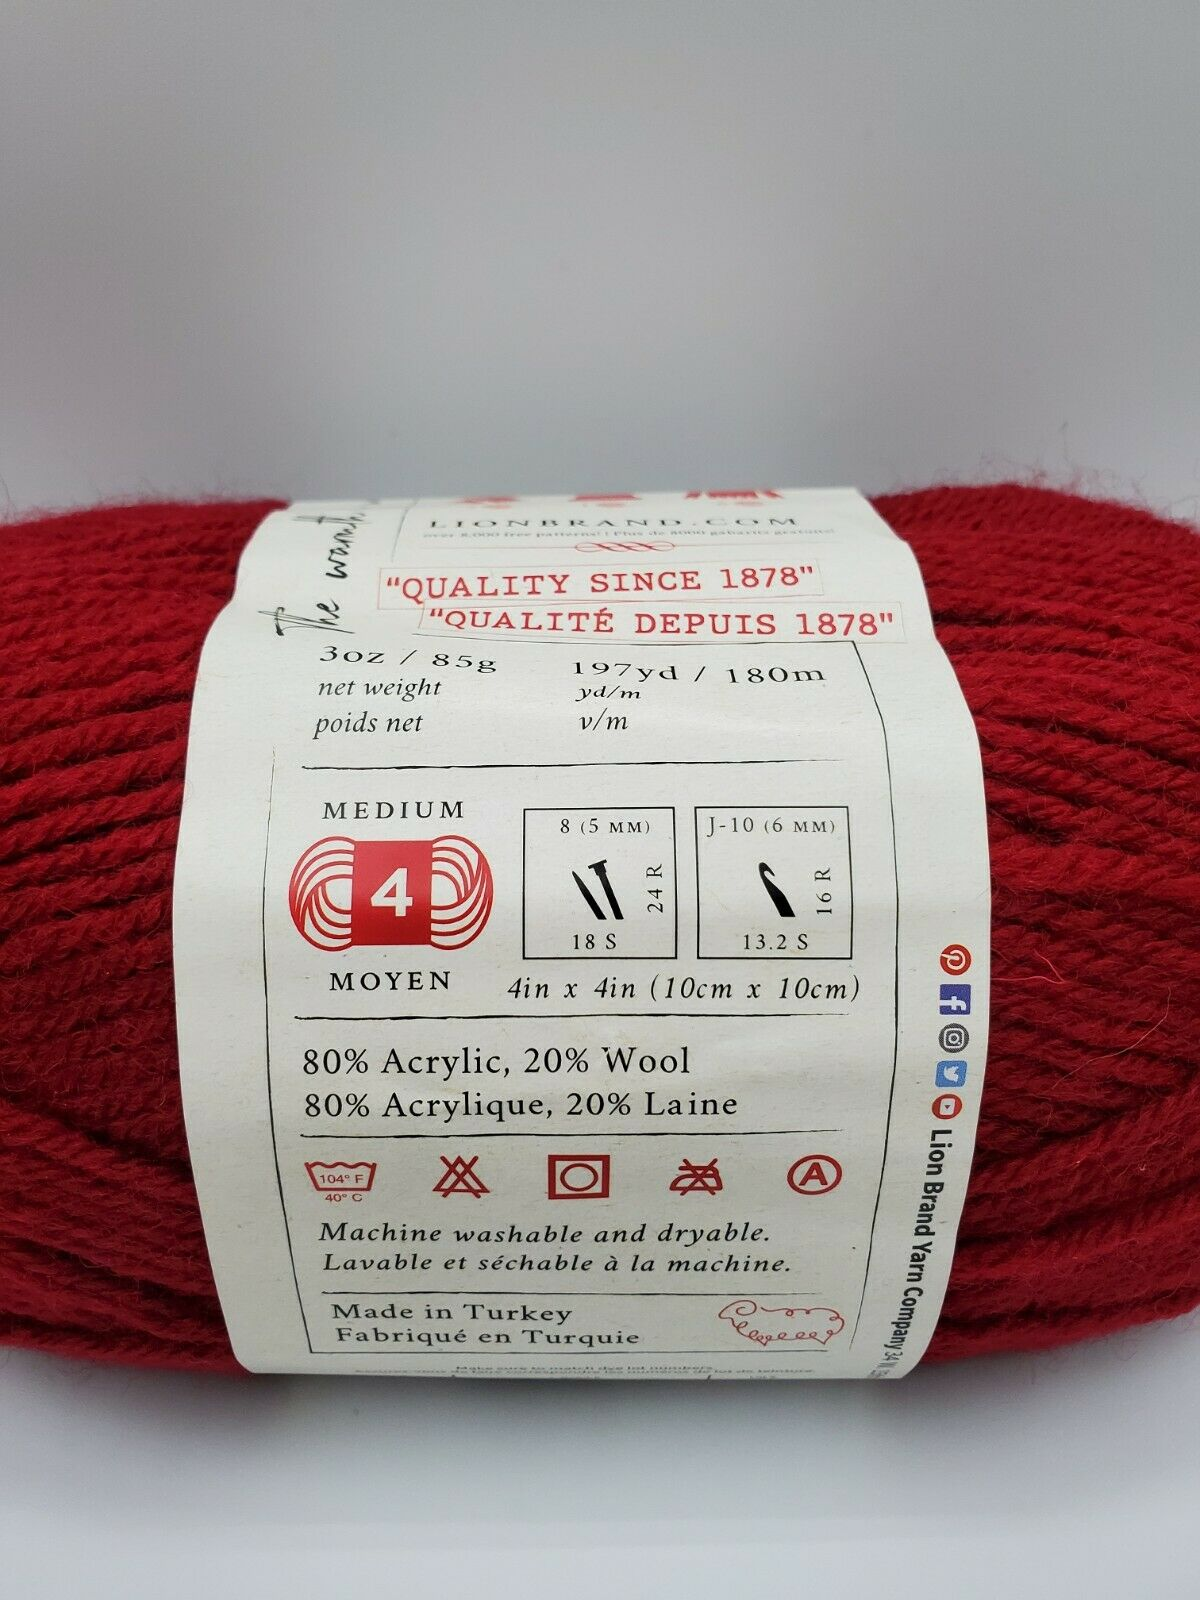 Lion Brand Wool-Ease Yarn Cranberry Color 3 Oz/85g 197yds/180m Medium Worsted - $5.60